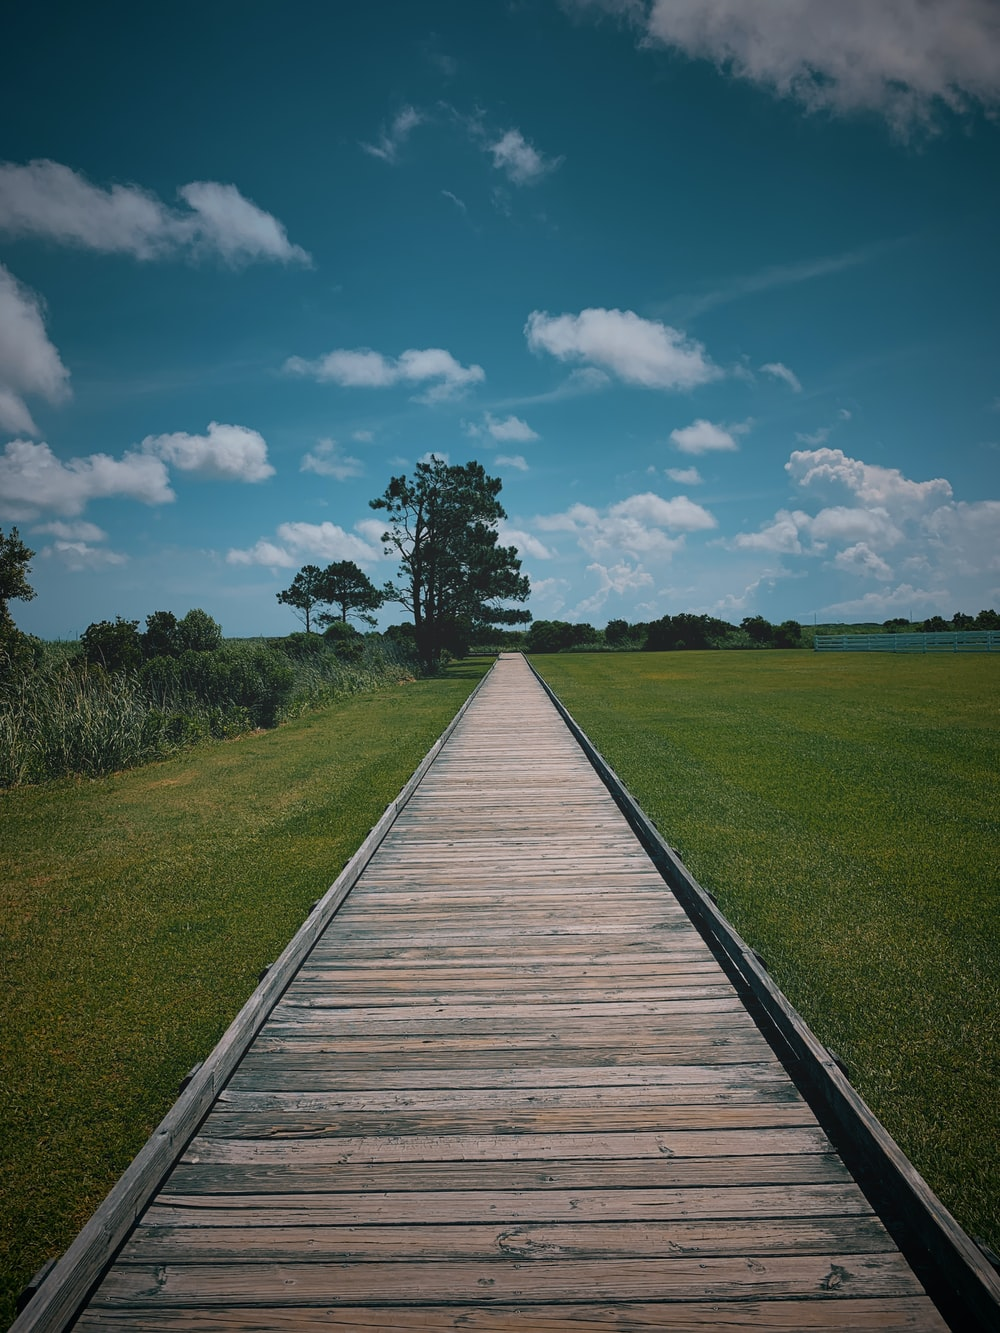 brown wooden pathway between green grass field under blue and white cloudy sky during daytime